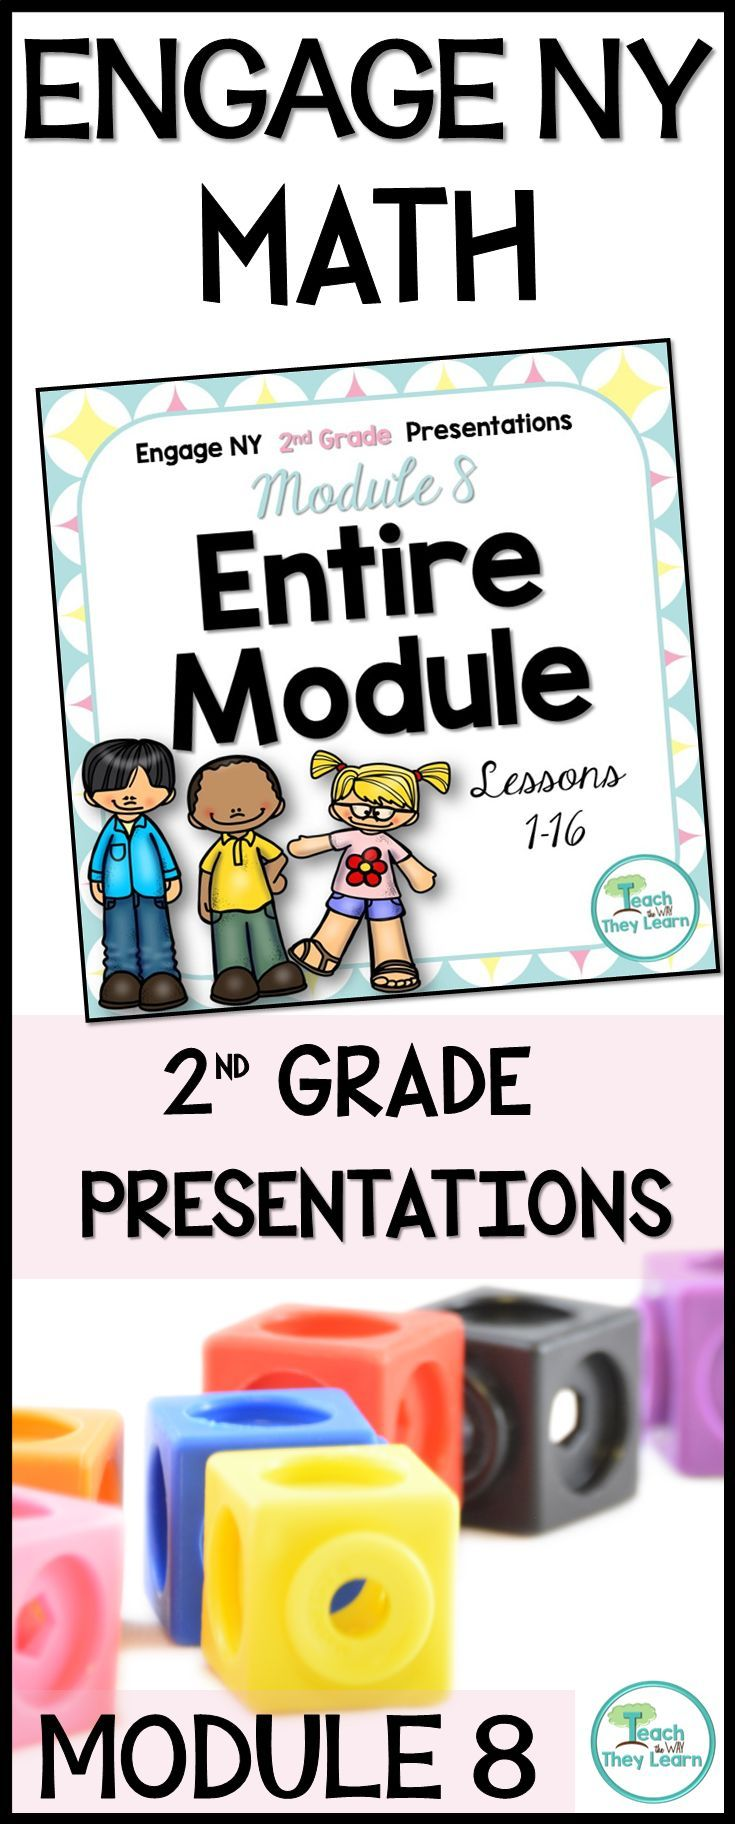 Second grade Engage NY presentations to teach math lessons for the entire module. Covers all lessons in the listed Engage NY math 2nd grade module. Engage NY/Eureka math are Common Core Aligned and awesome math curriculum, but hard to teach from a manual. Put down your lesson plans and use these Engage New York presentations to keep students engaged. PDF format allows slides to work in classrooms that use interactive whiteboards or anywhere you would show a Power Point presentation.